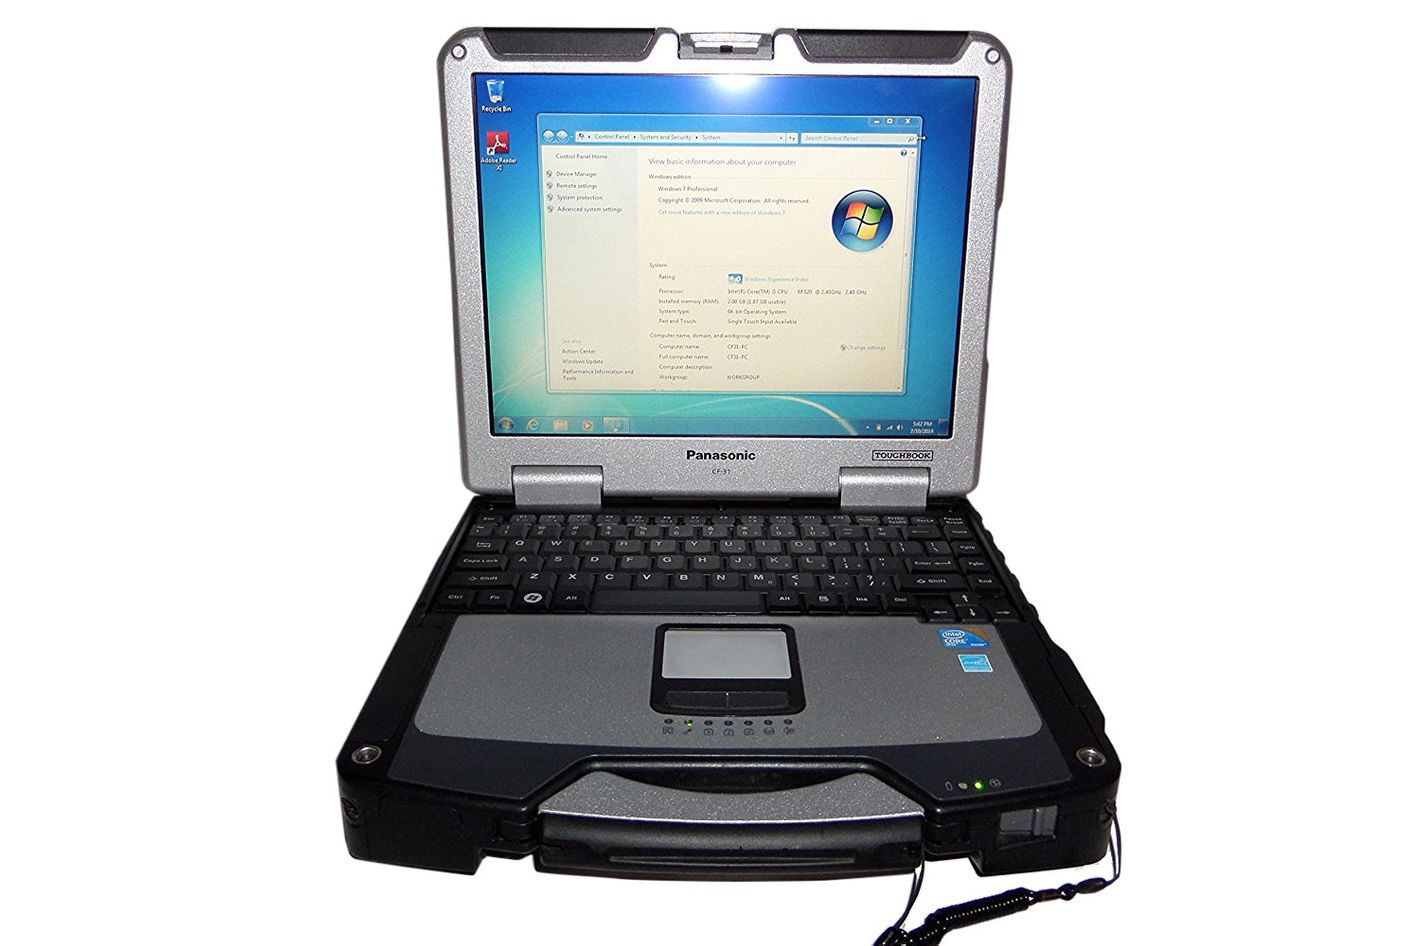 Panasonic Toughbook CF-31 Rugged Notebook PC With Core i5